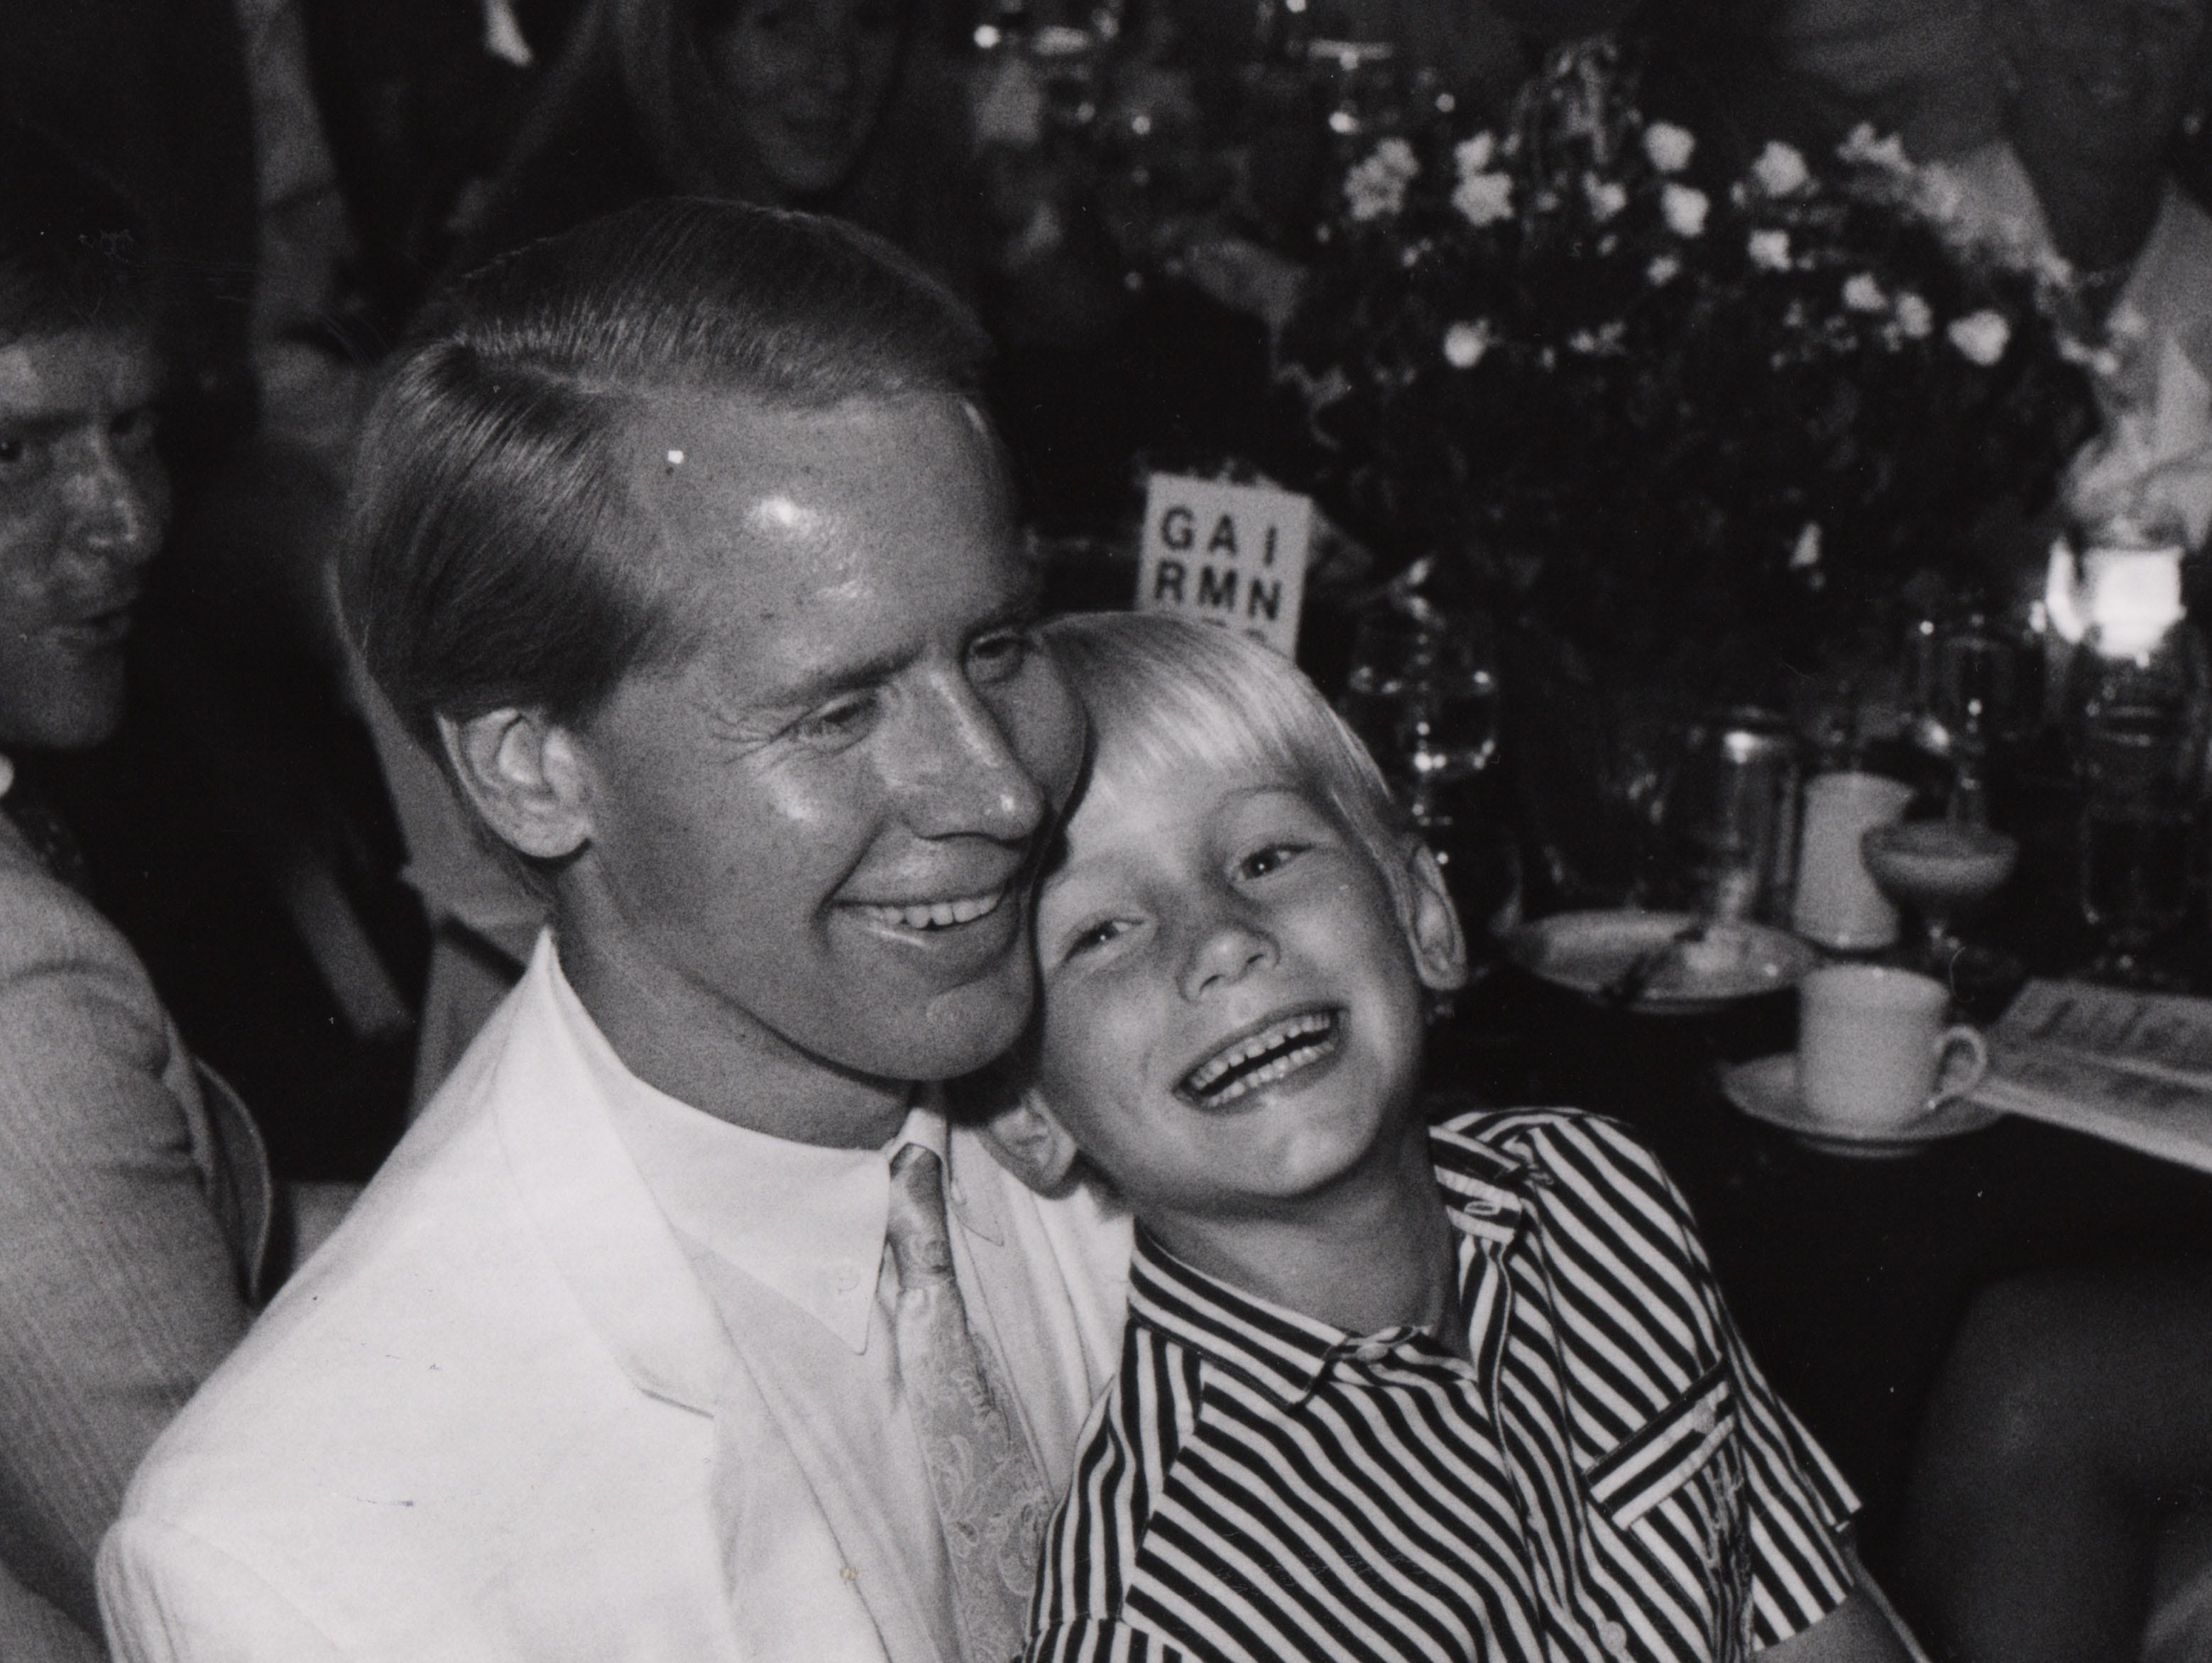 Carl Lindner III enjoys a laugh with his son Carl Lindner IV at the American Jumping Classic in 1990.